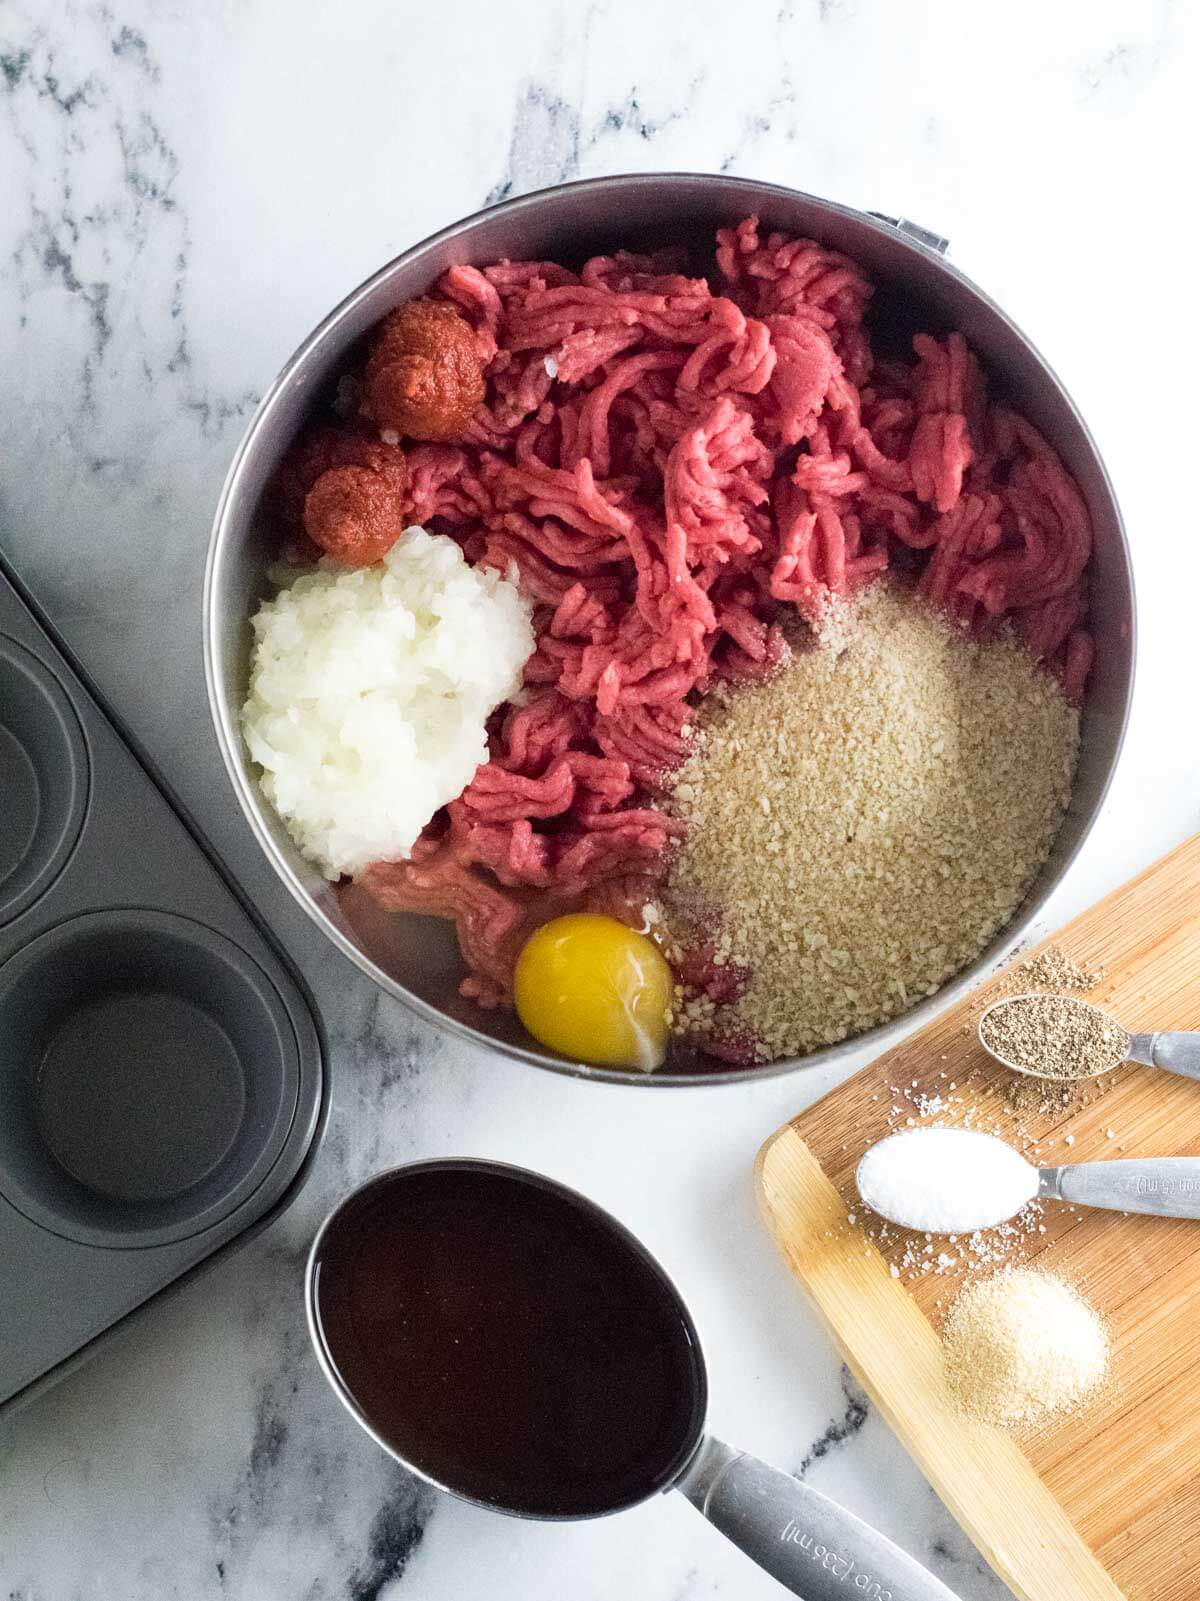 Meatloaf muffin recipe ingredients in a large bowl.